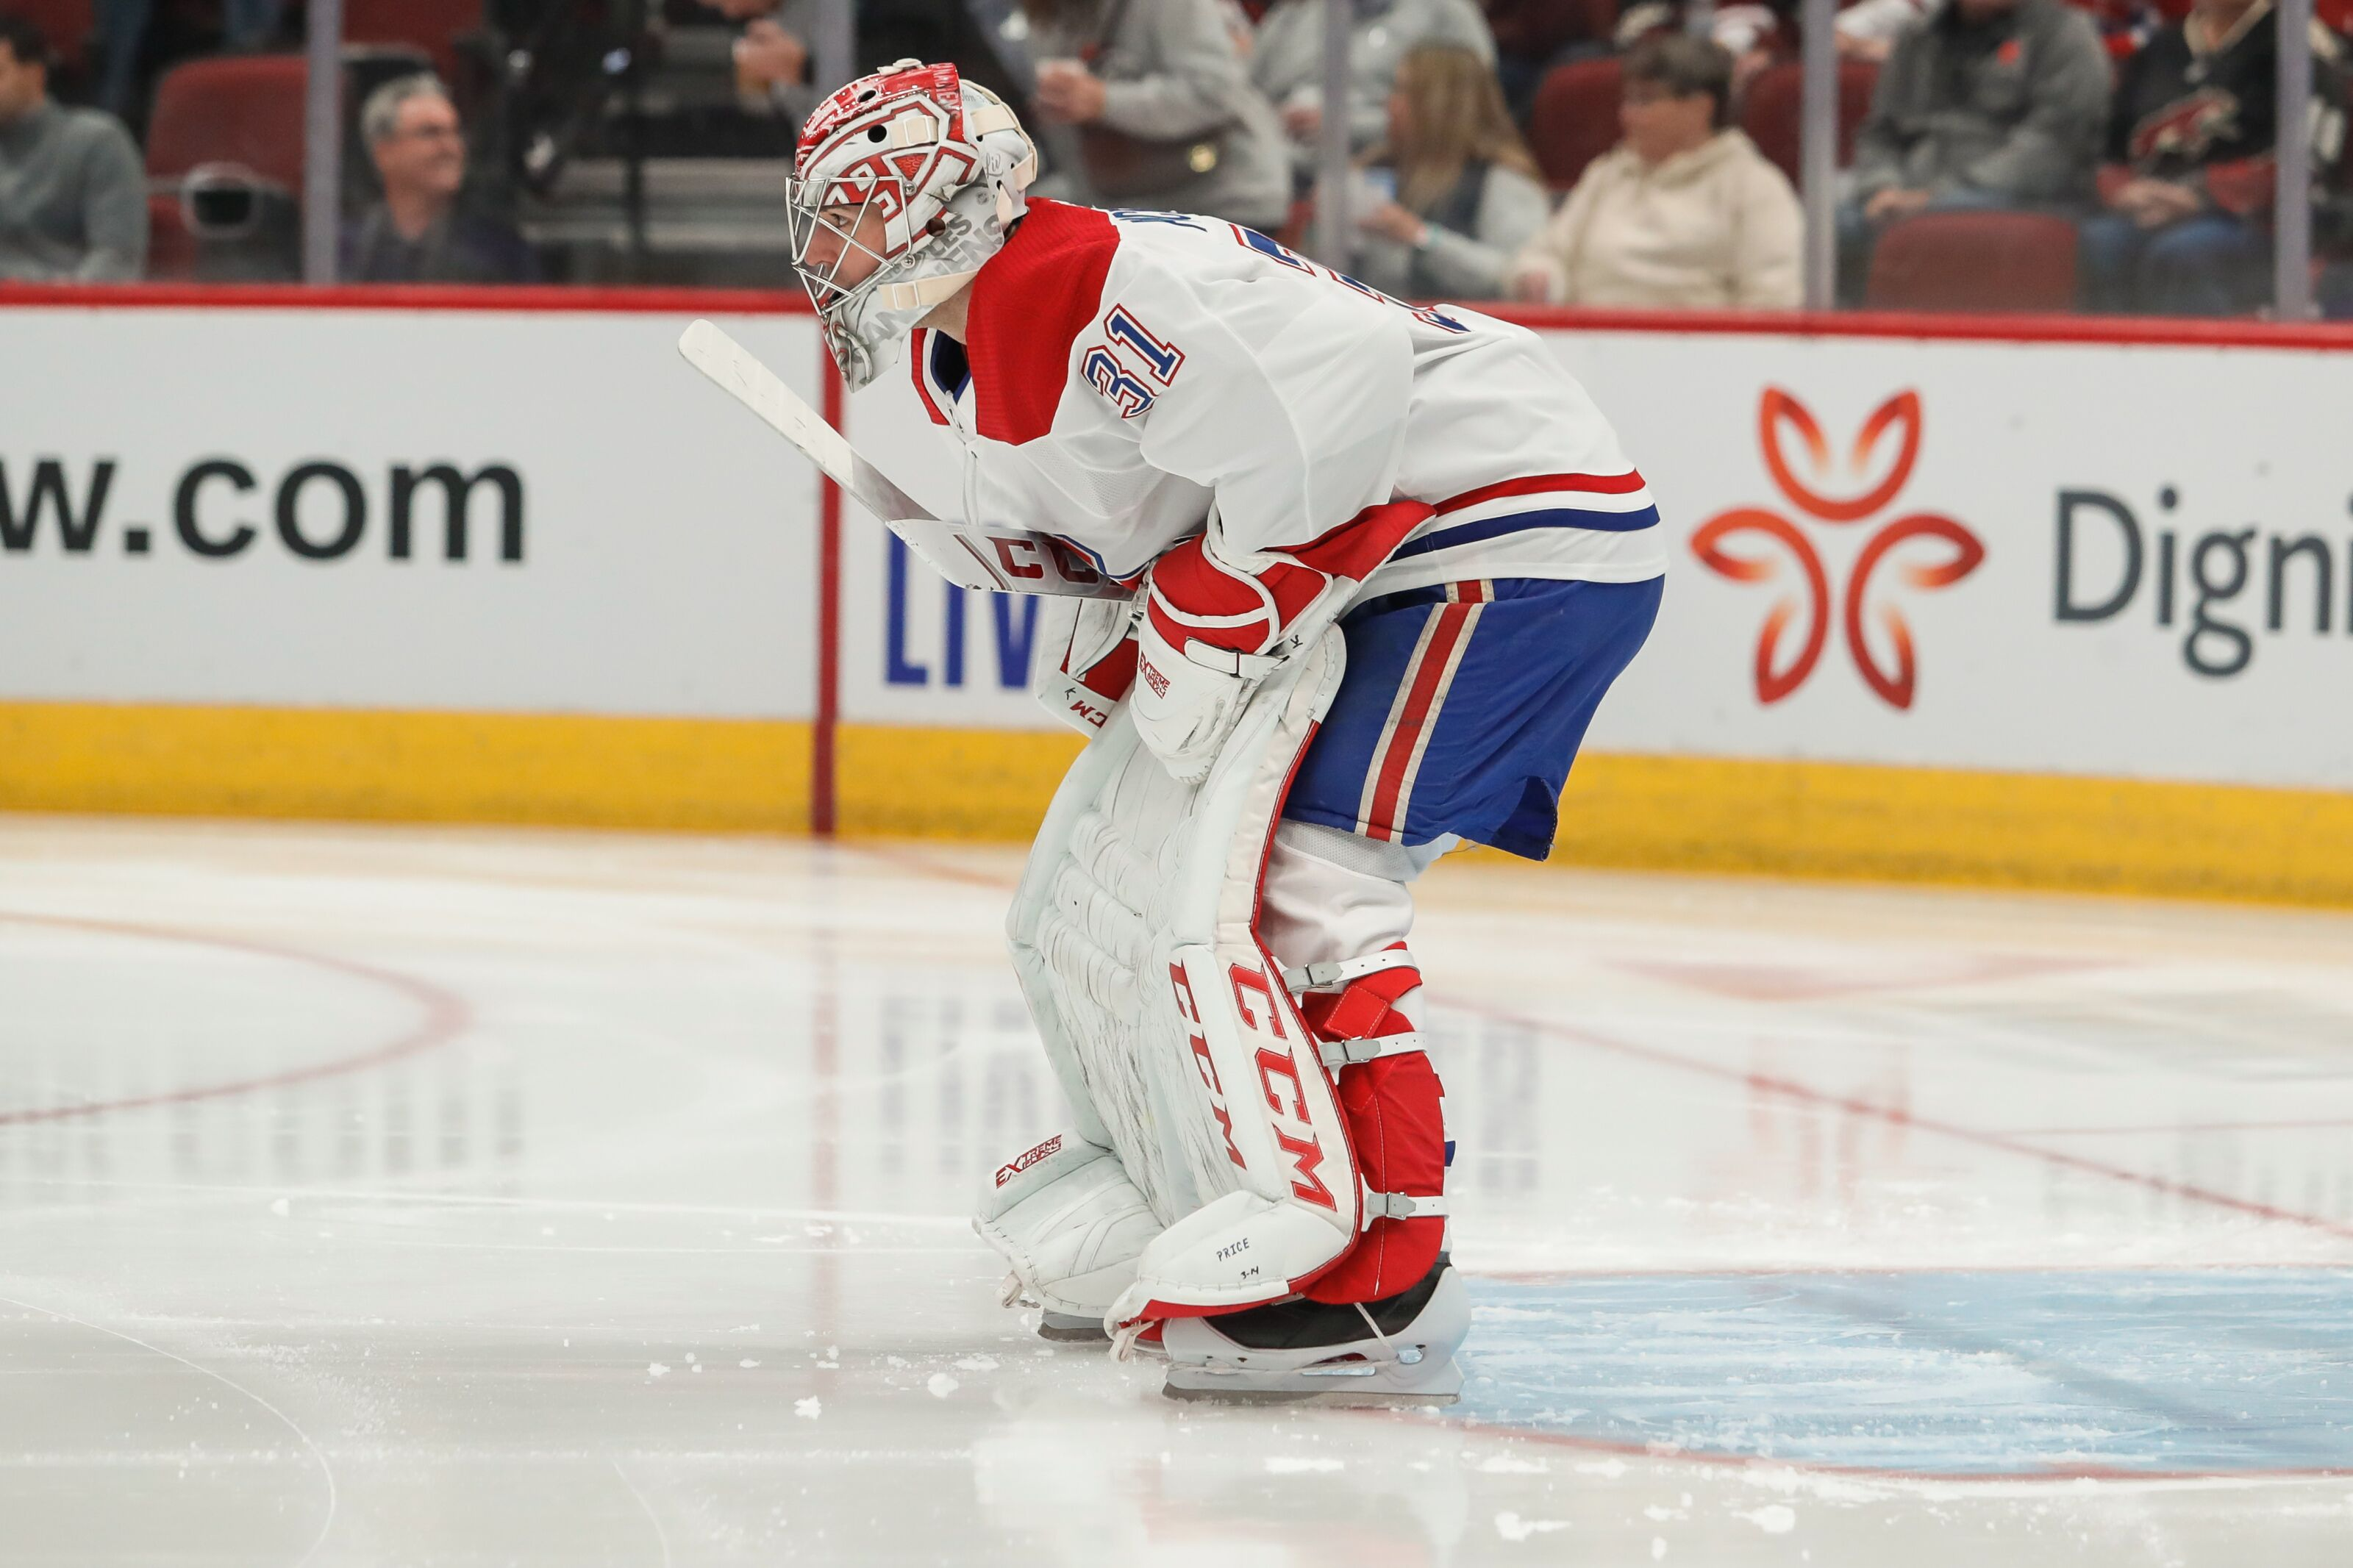 Montreal Canadiens Risked Season By Not Pulling Carey Price vs Arizona Coyotes